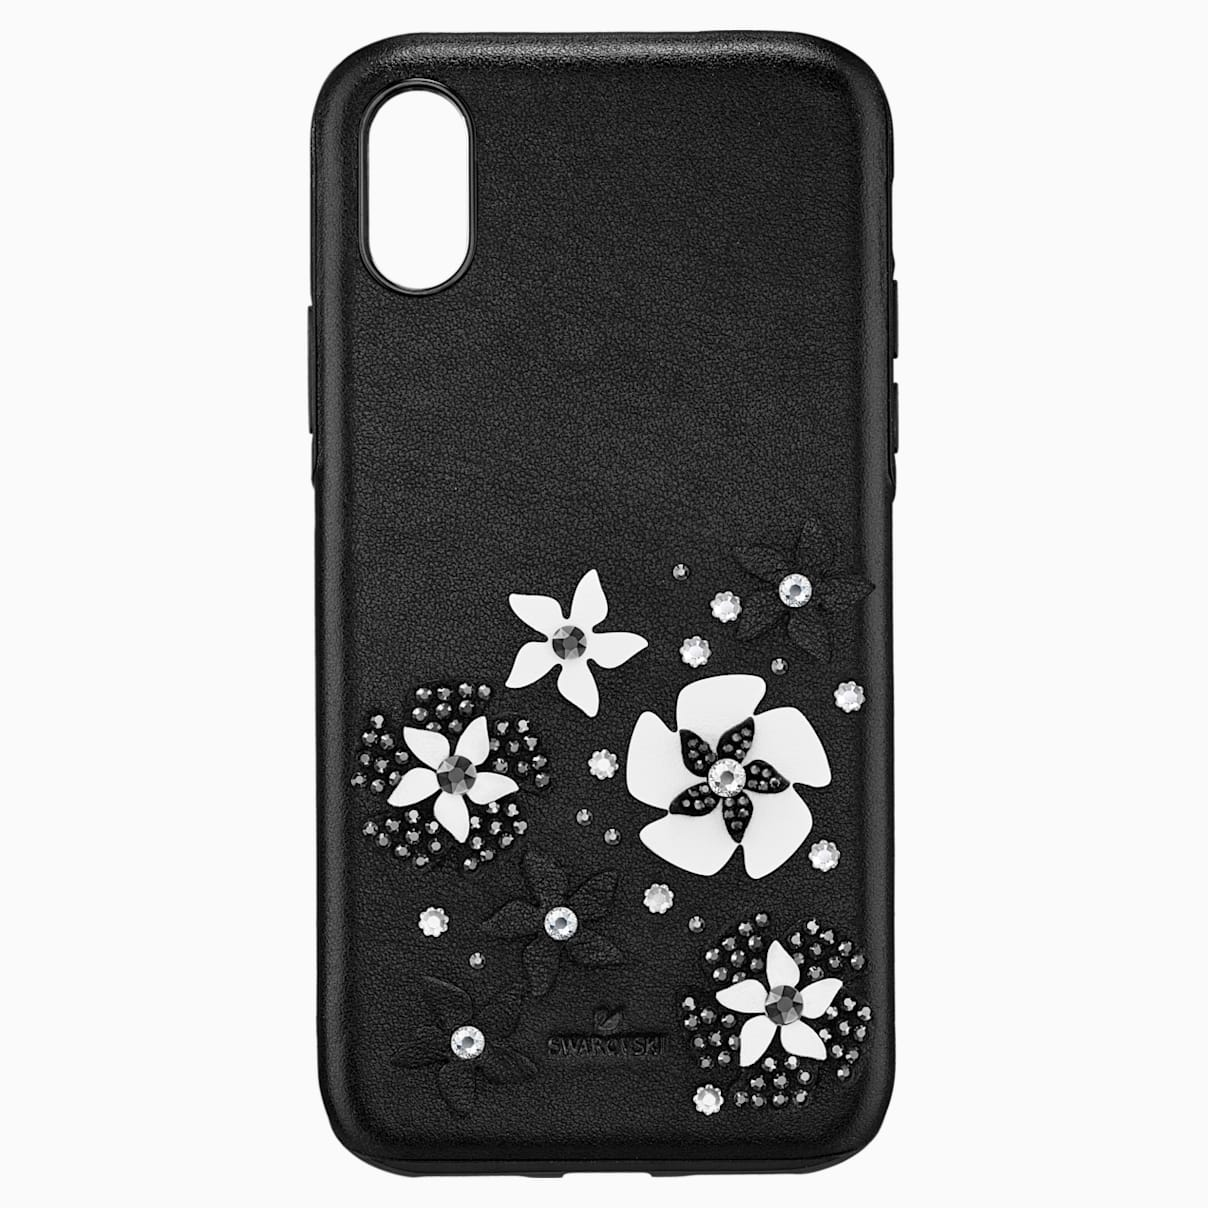 Custodia smartphone con bordi protettivi integrati Mazy,iPhone® X/XS, nero